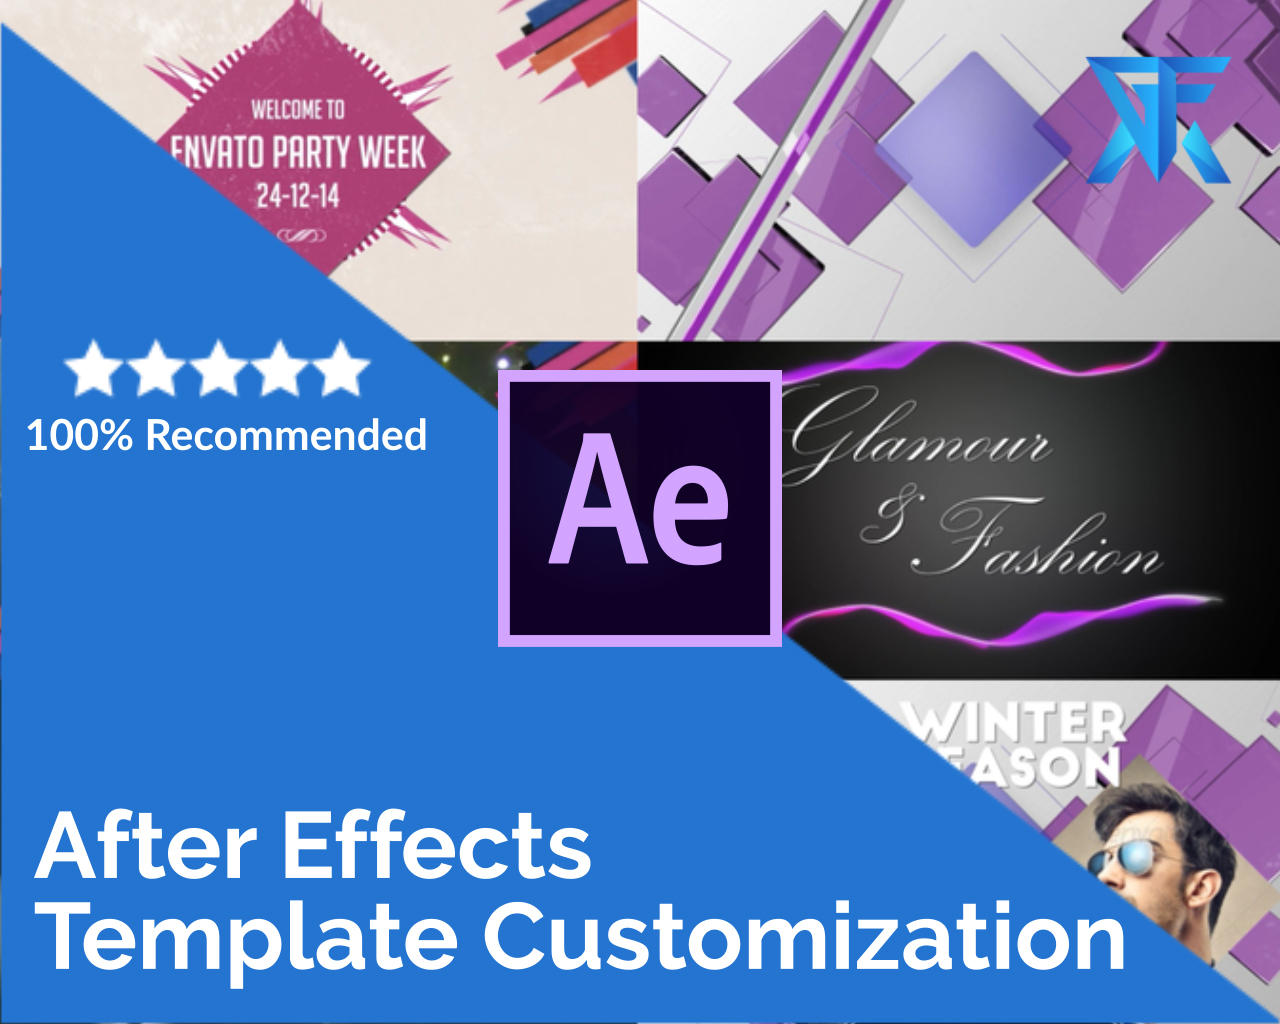 After Effects Video Template Customization and Rendering by gfxmotion - 105868